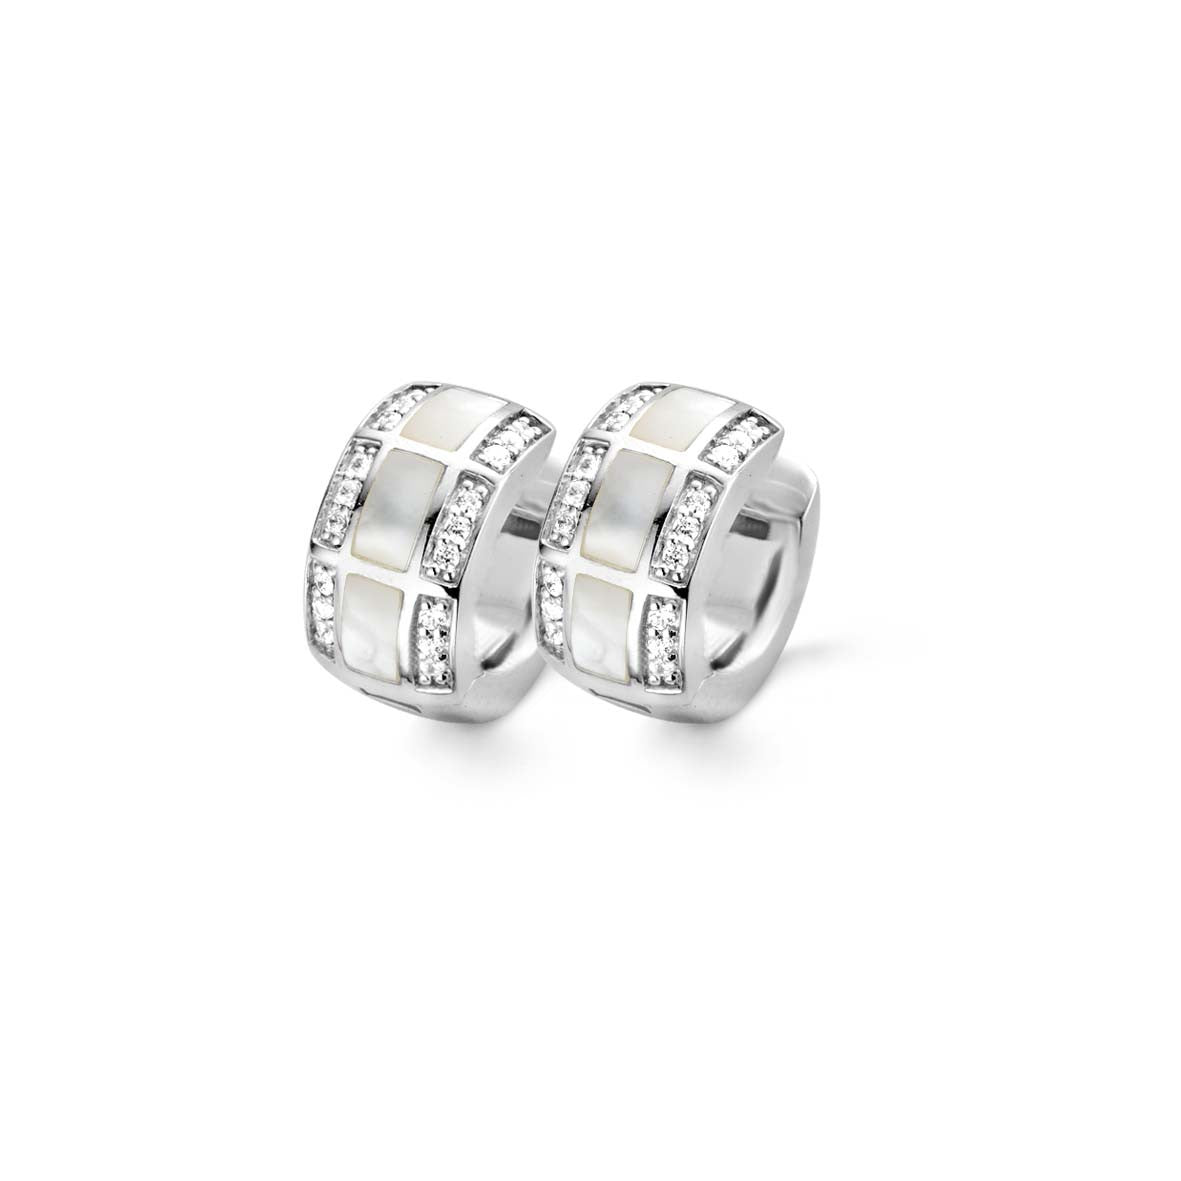 Ti Sento Earrings Hoop Silver And White Mother of Pearl And Cubic Zirconia 3 Row